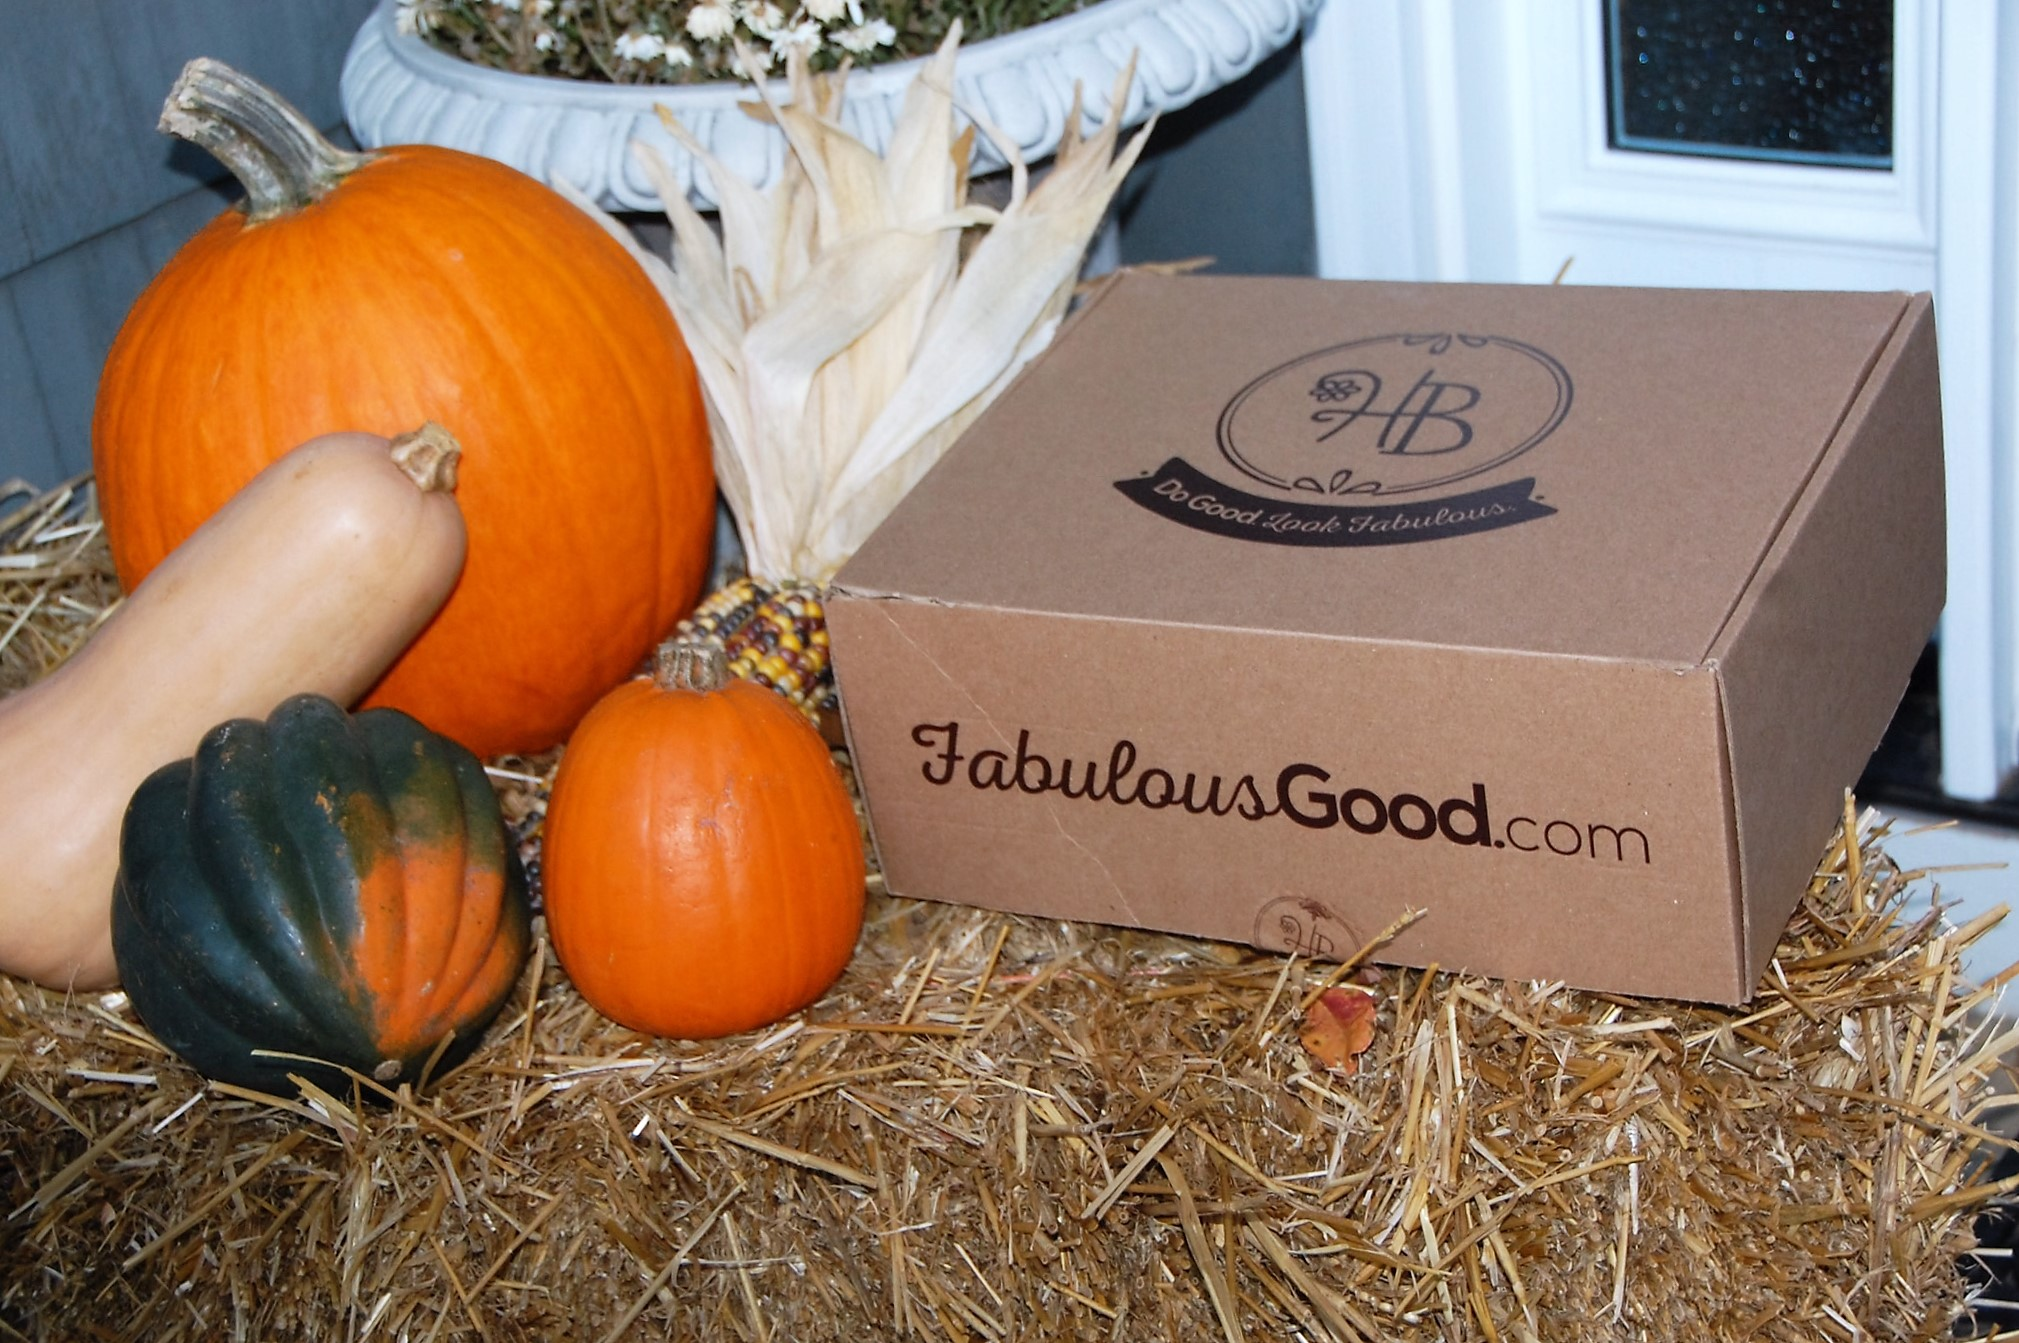 By subscribing monthly to fabulousgood.com a box of clothing and jewelry will show up on your doorstep chosen by your Honey Butter Boutique stylist just for you